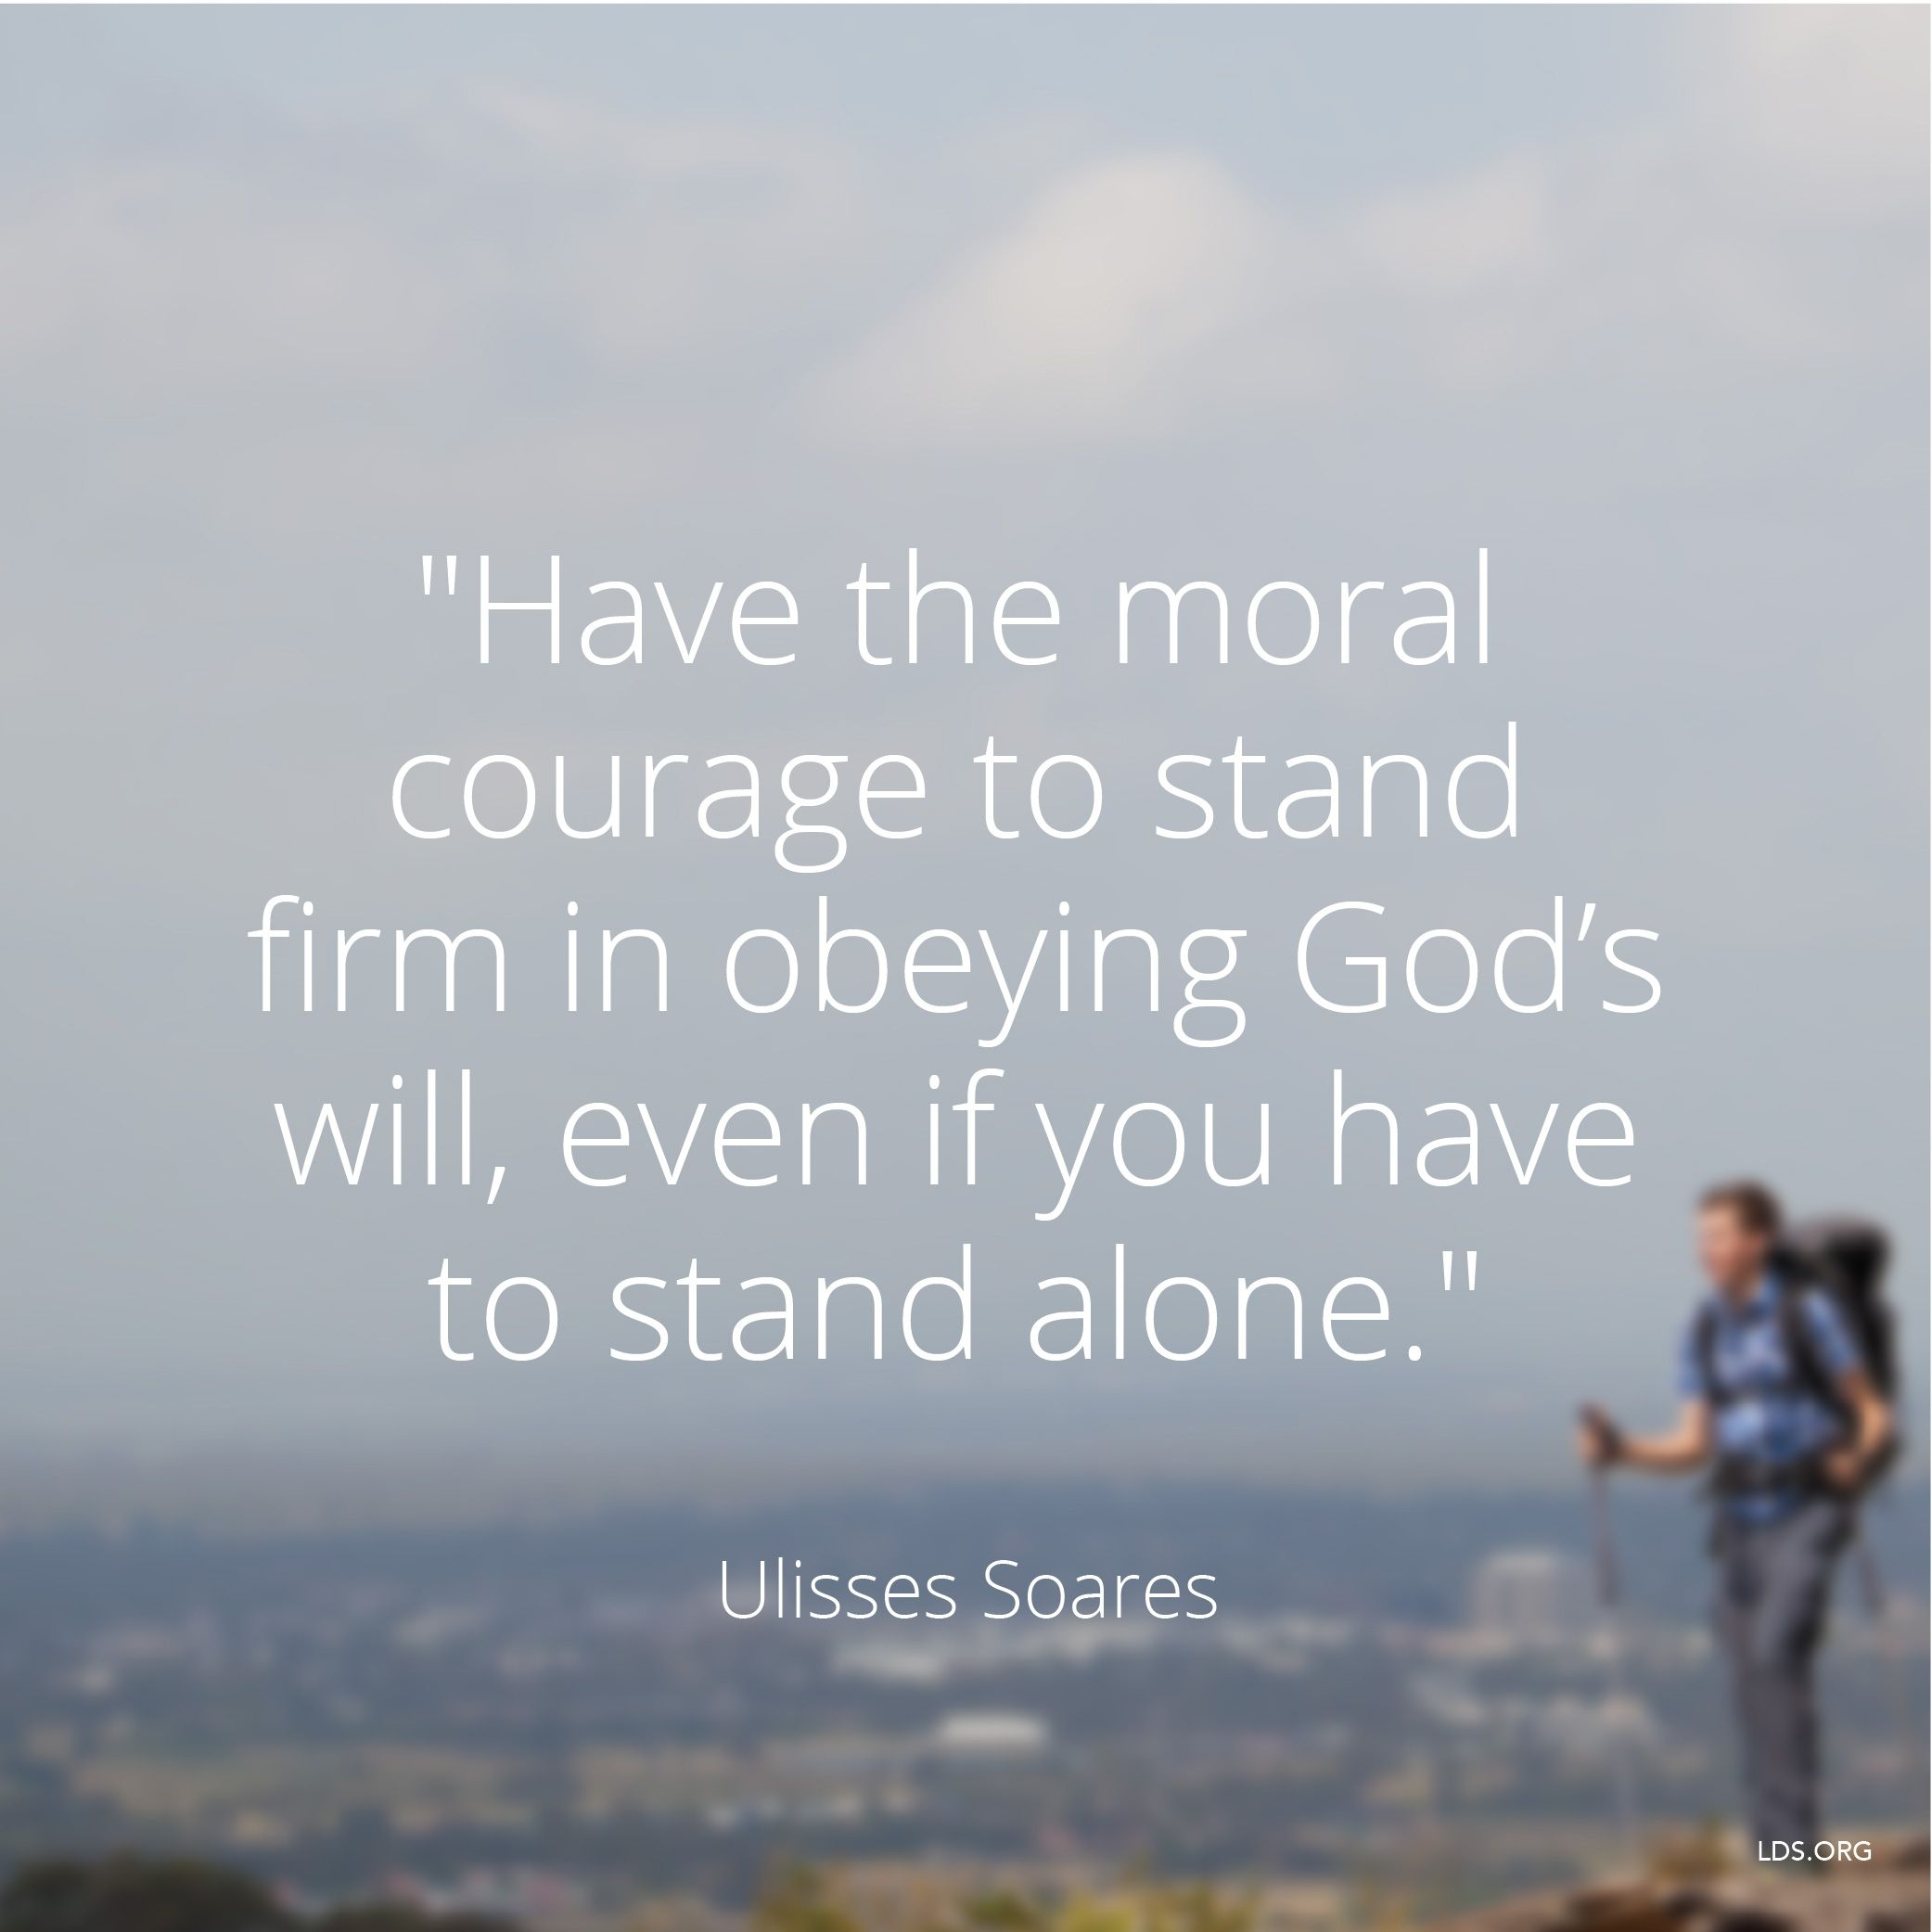 """""""Have the moral courage to stand firm in obeying God's will, even if you have to stand alone.""""—Elder Ulisses Soares, """"Yes, We Can and Will Win!"""""""